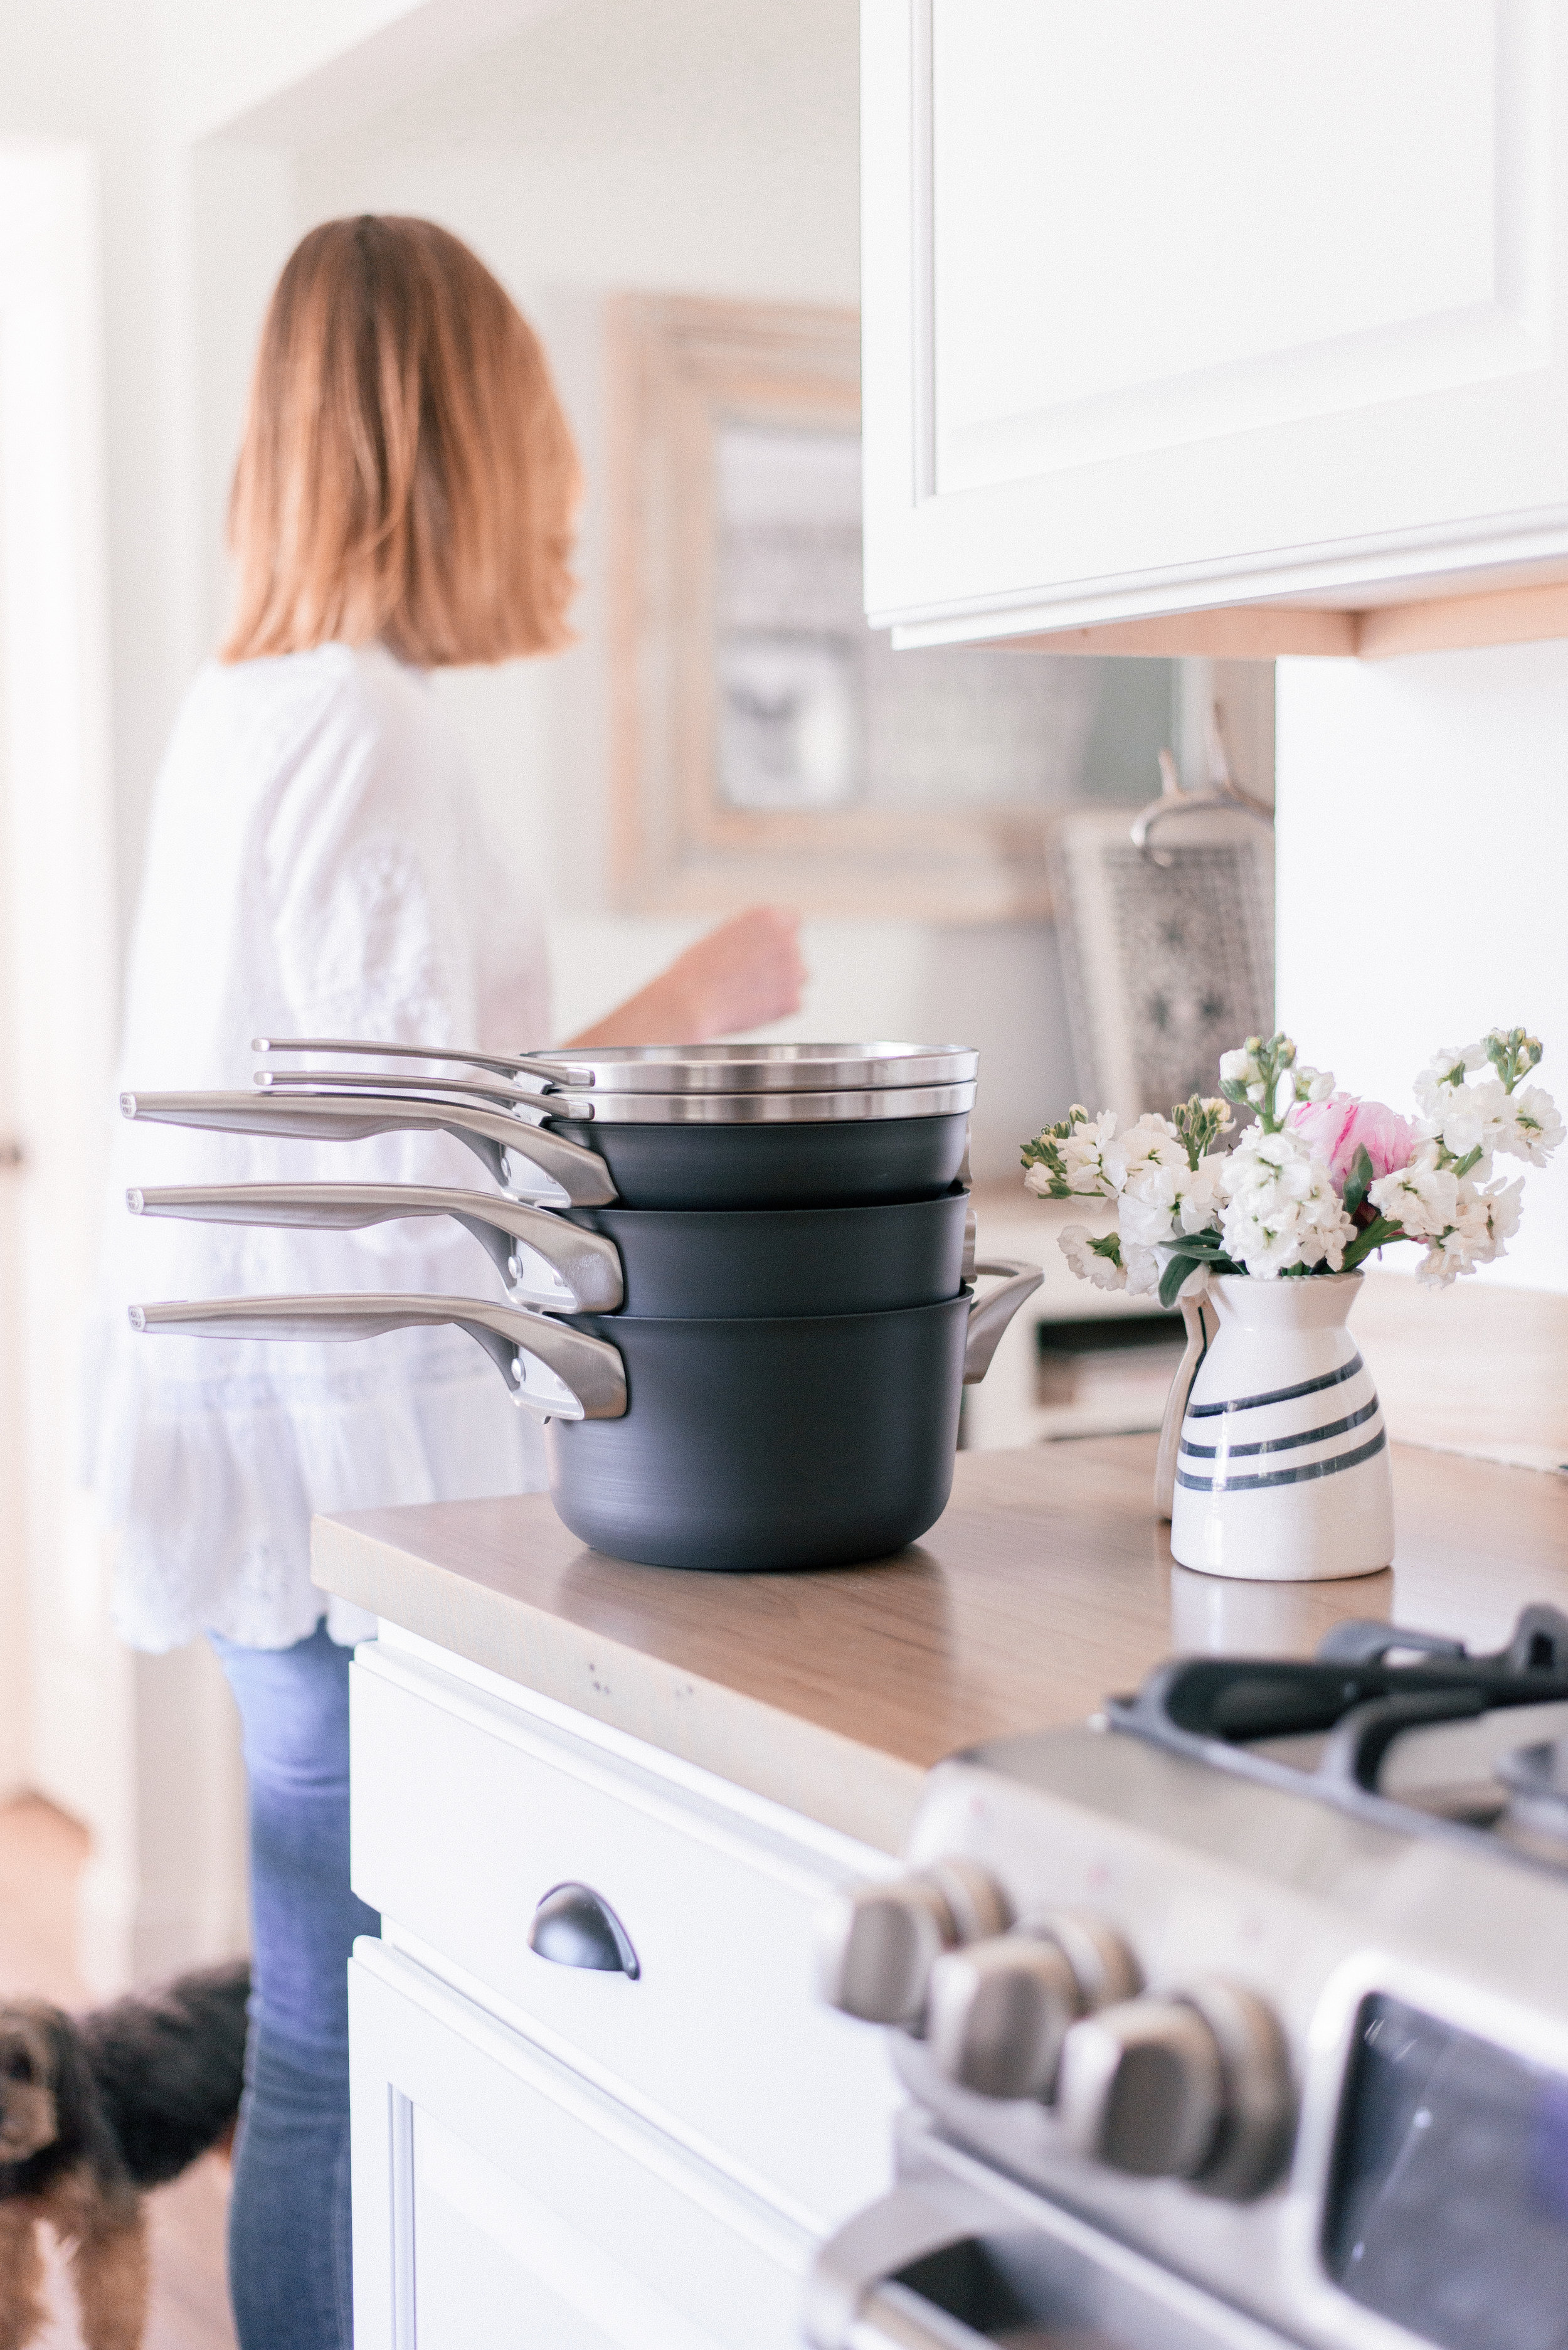 The Best Nonstick Cookware Sets with Calphalon and Bed Bath & Beyond featured by top U.S. Lifestyle blog Love + Specs: image of woman in white shirt next to Calphalon nonstick pans in kitchen